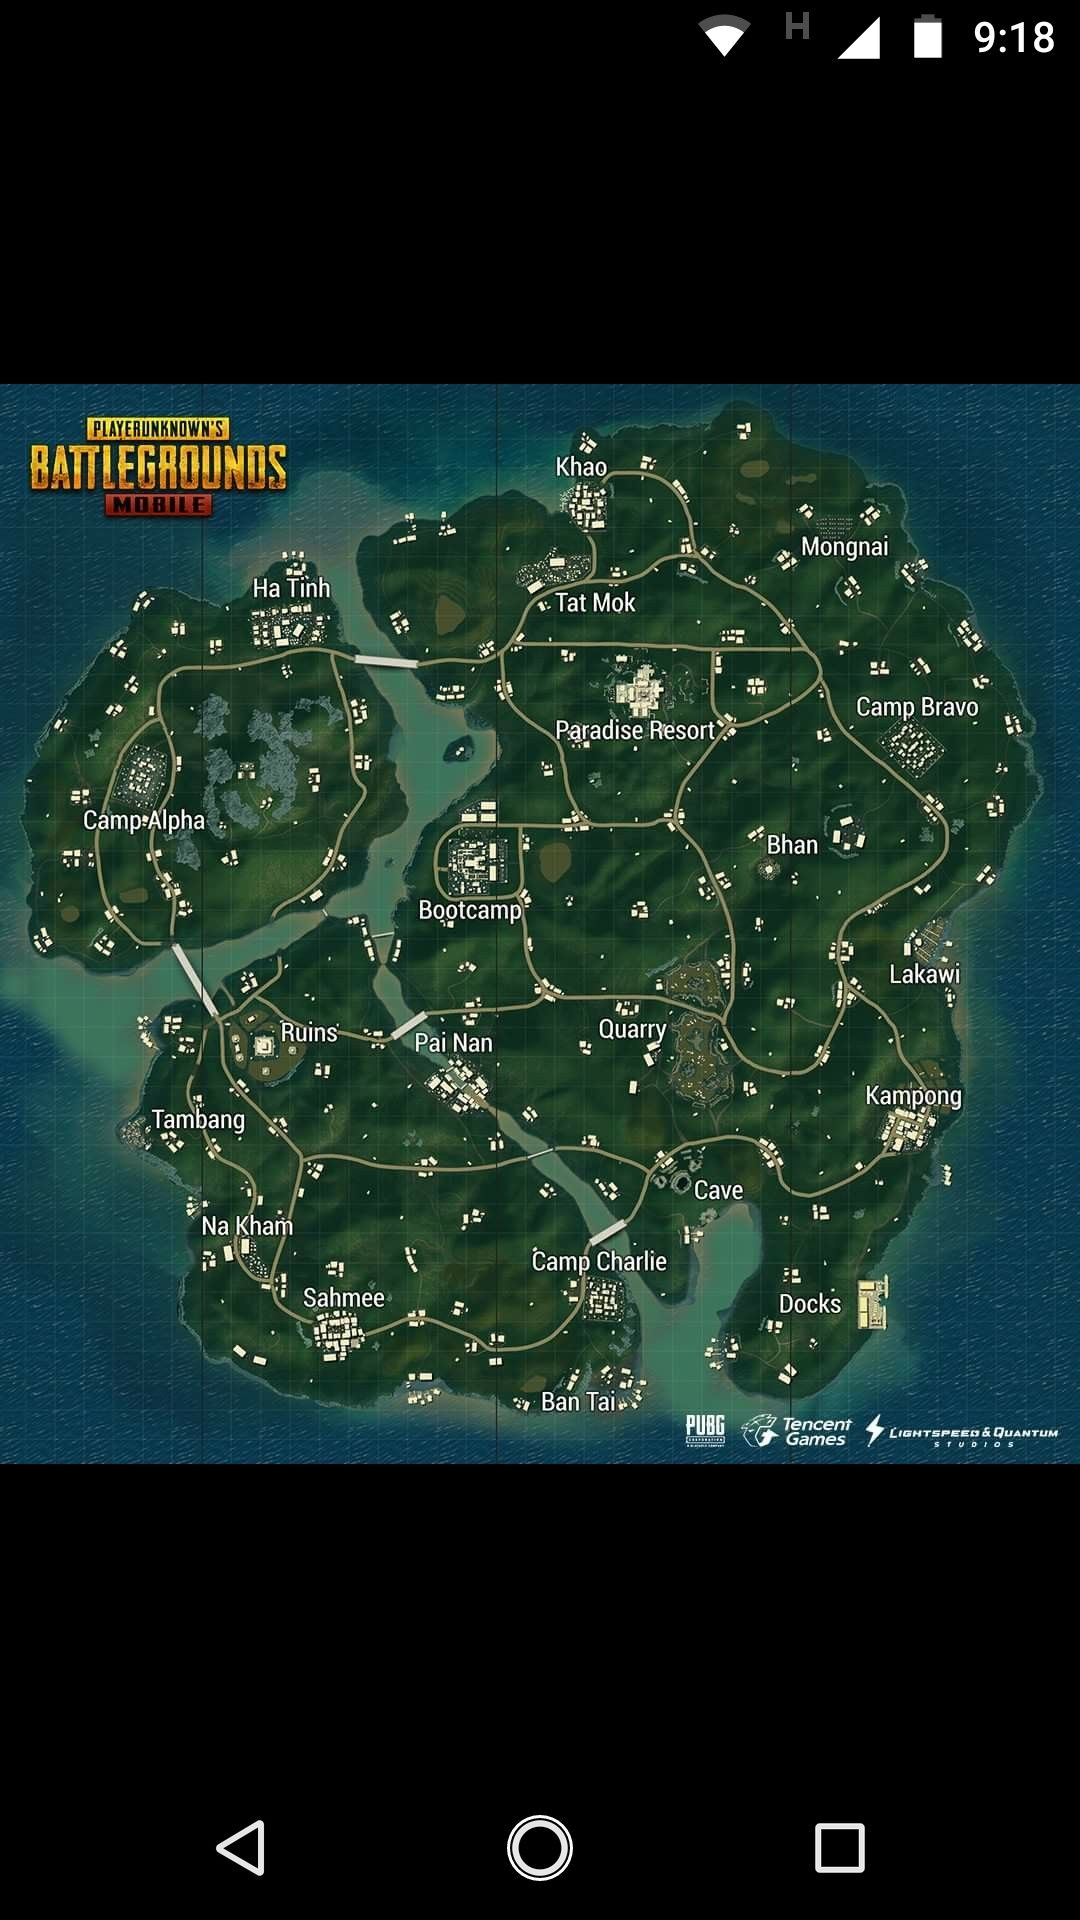 Pubg Sanhok Map Pubg 480x800 Wallpaper Gaming Wallpapers Map